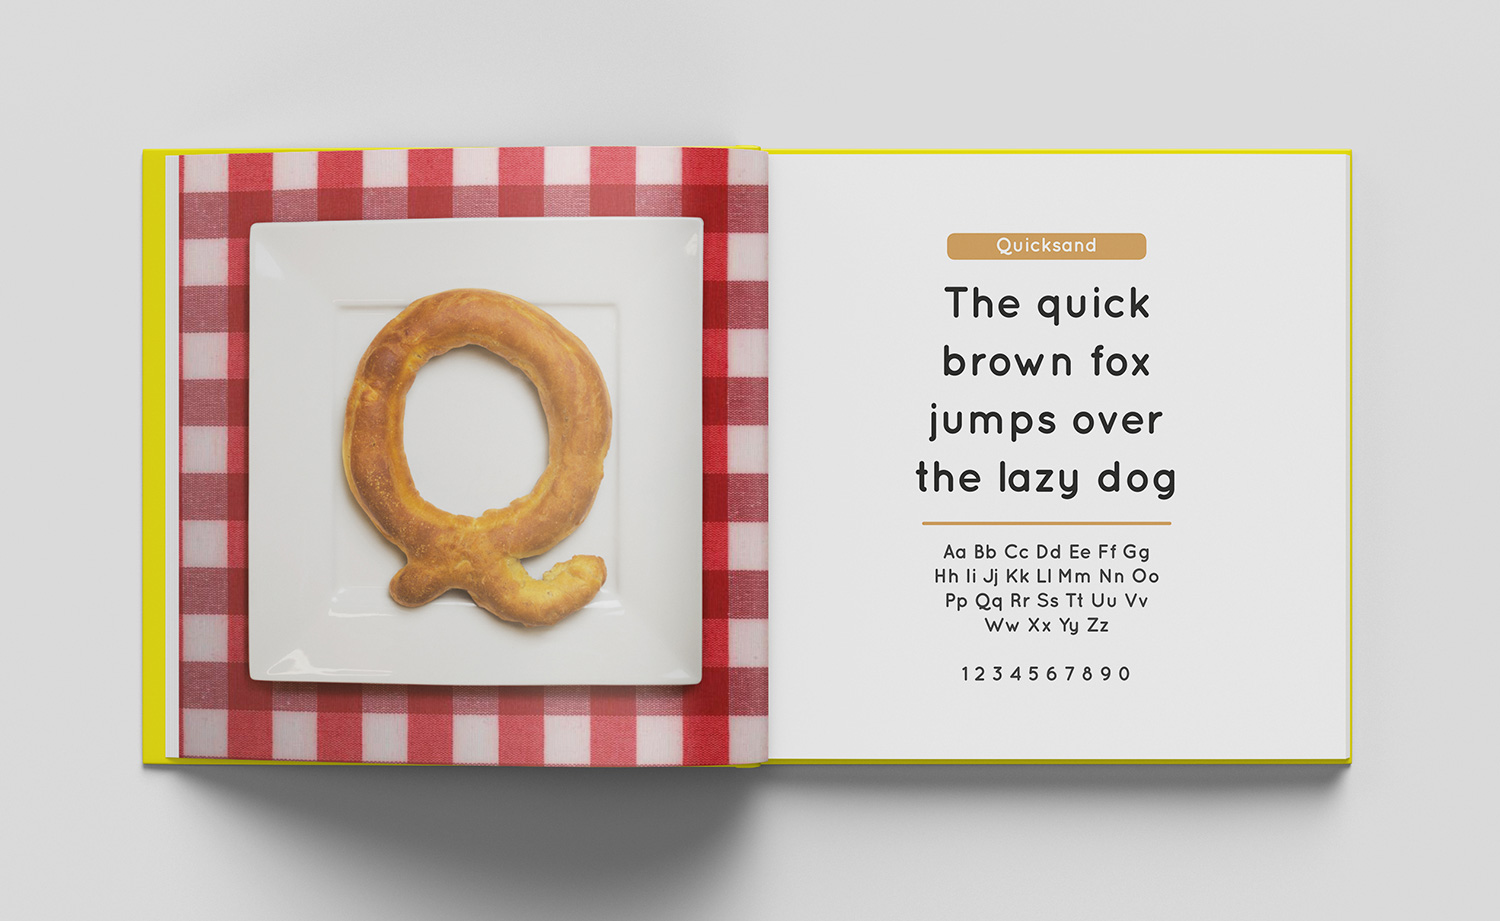 ABC of typography book spread letter Q made from a bagel on a plate